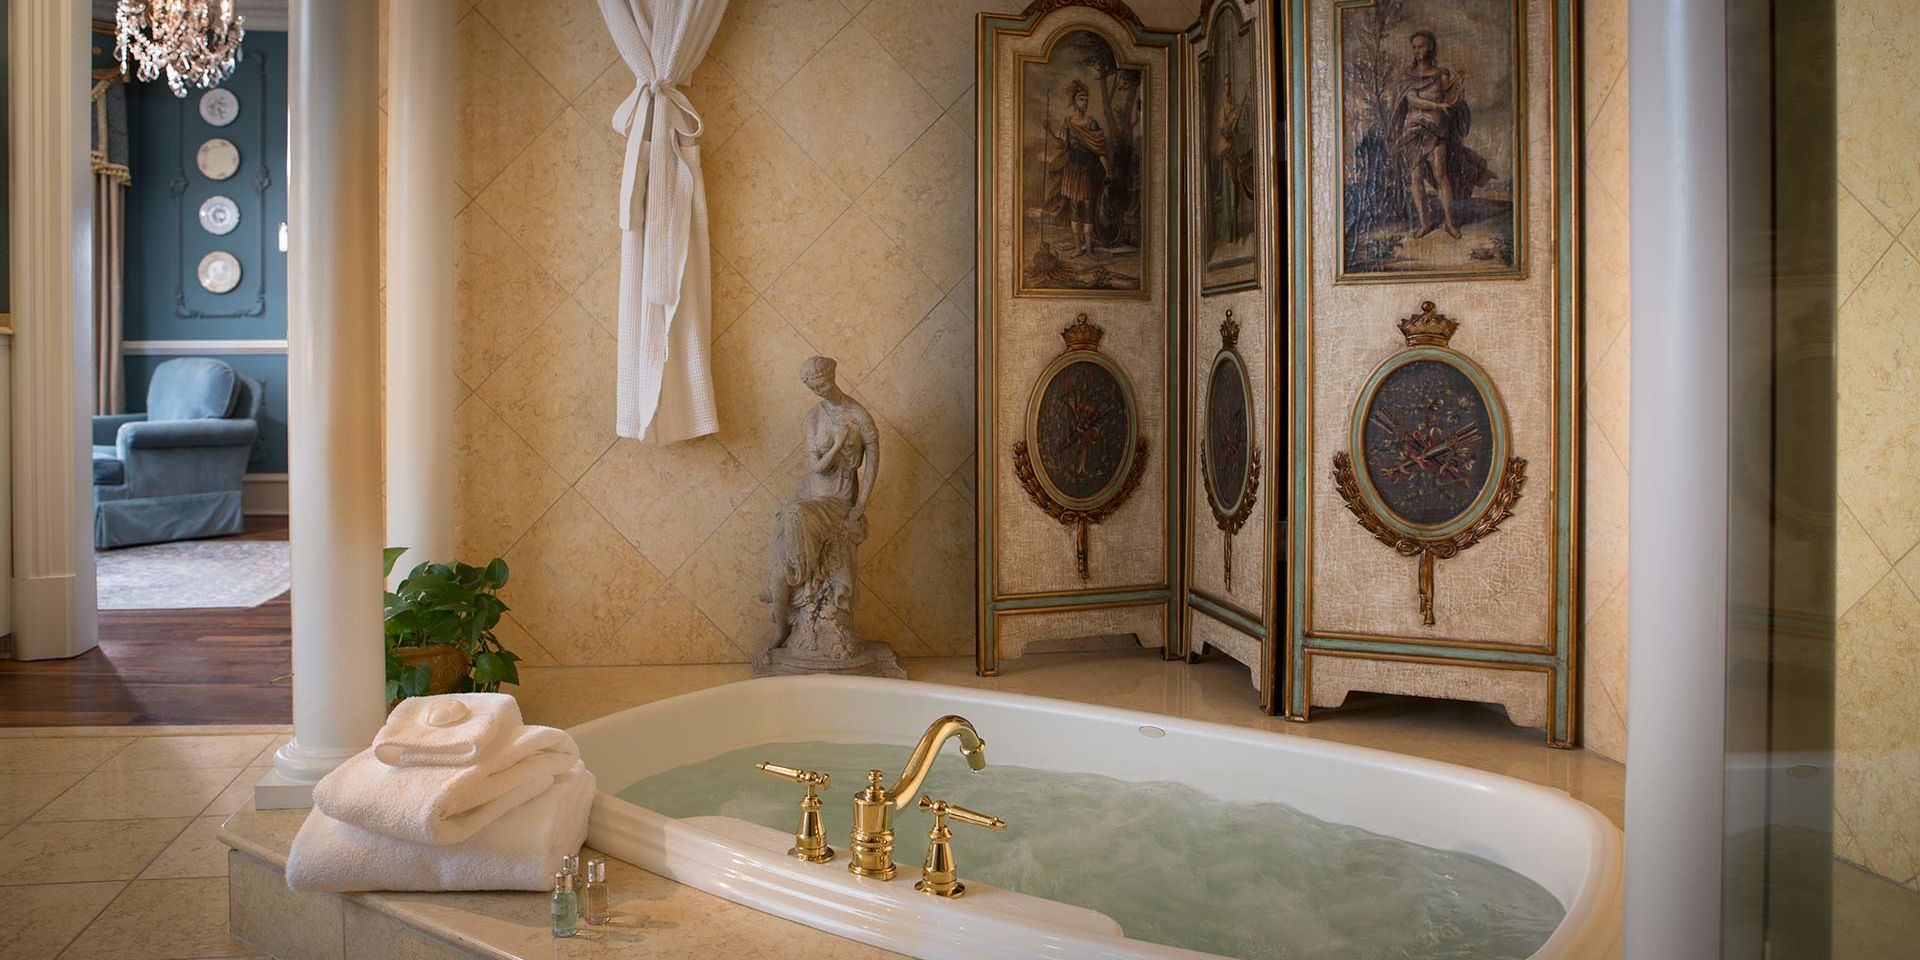 Separate jetted tub inside the Renaissance Guest Room bathroom